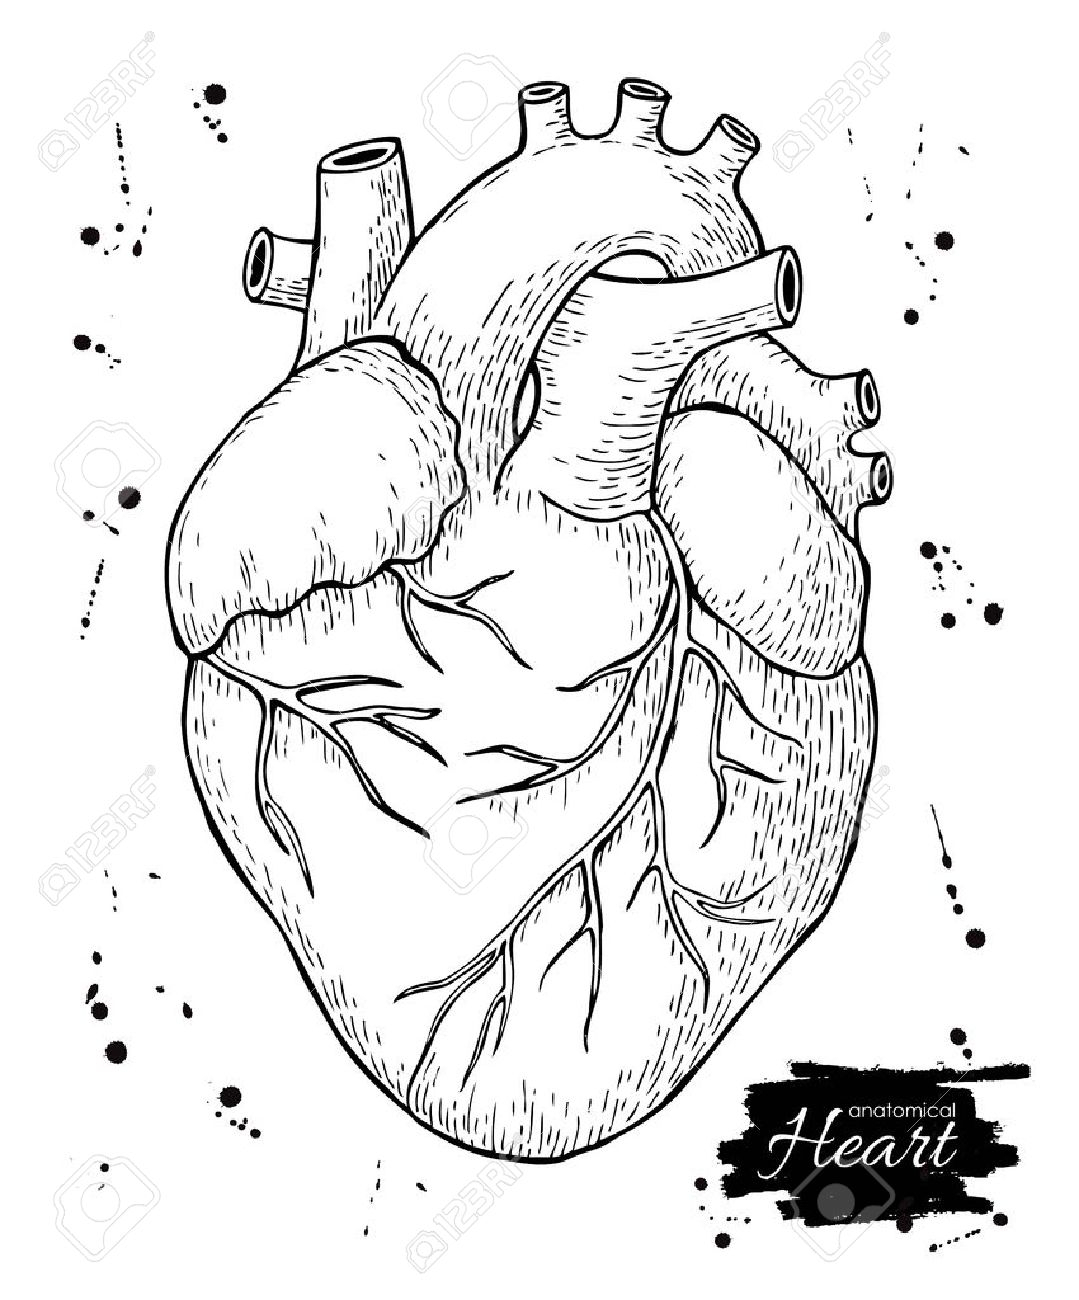 1079x1300 Drawing A Human Heart Anatomical Human Heart. Engraved Detailed